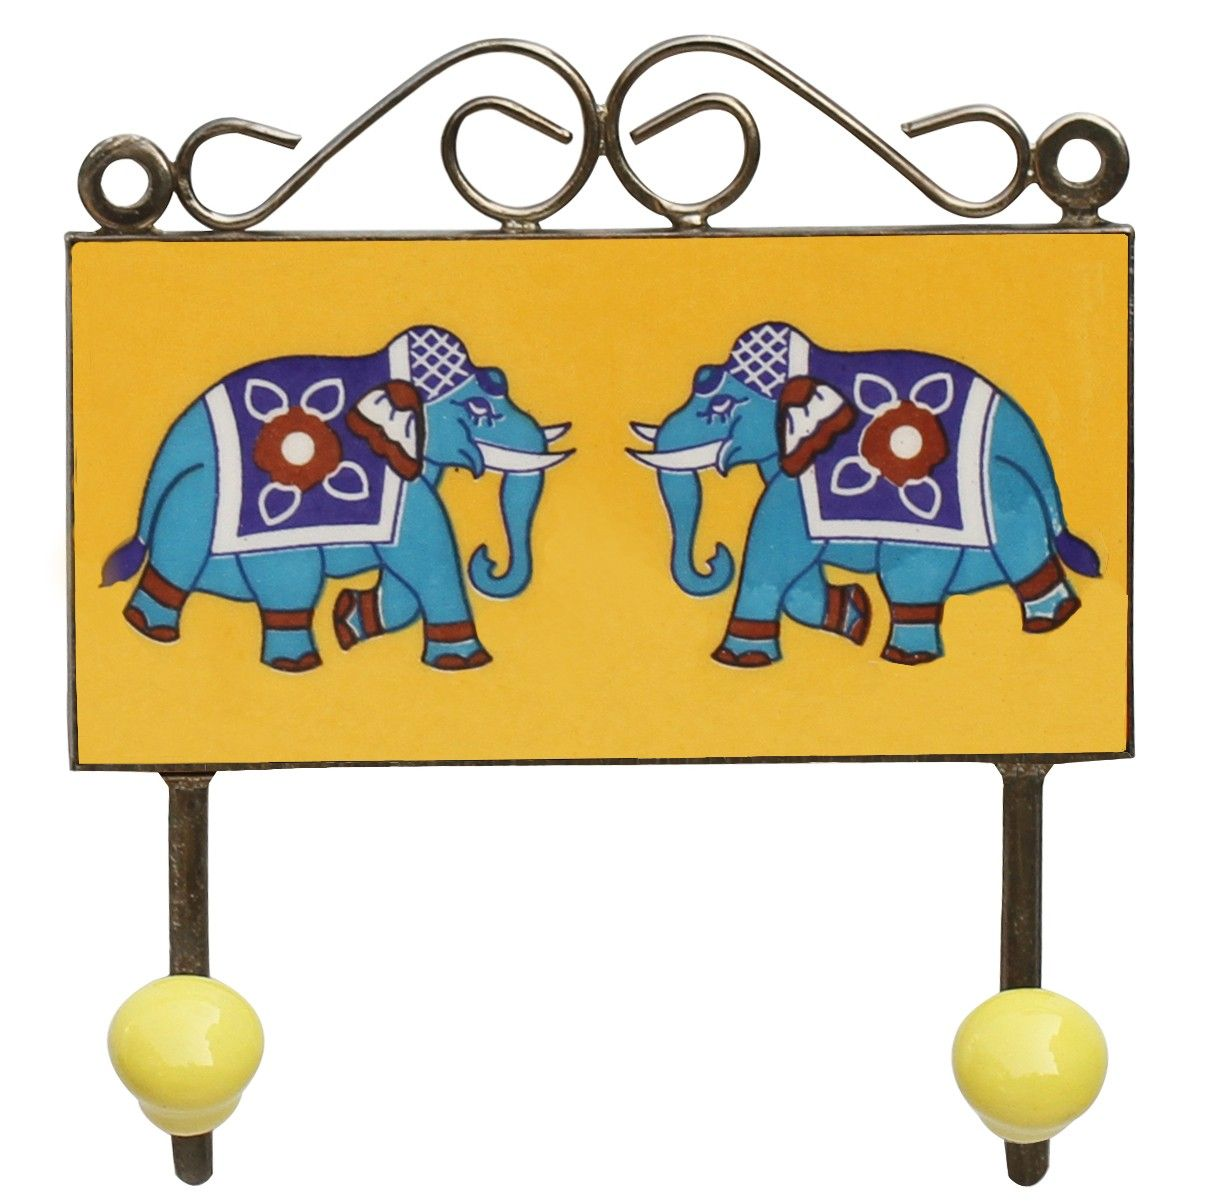 "Elephant Duo 1 – #Handmade 6"" #Ceramic Double #Wall-Hook with 2 ..."